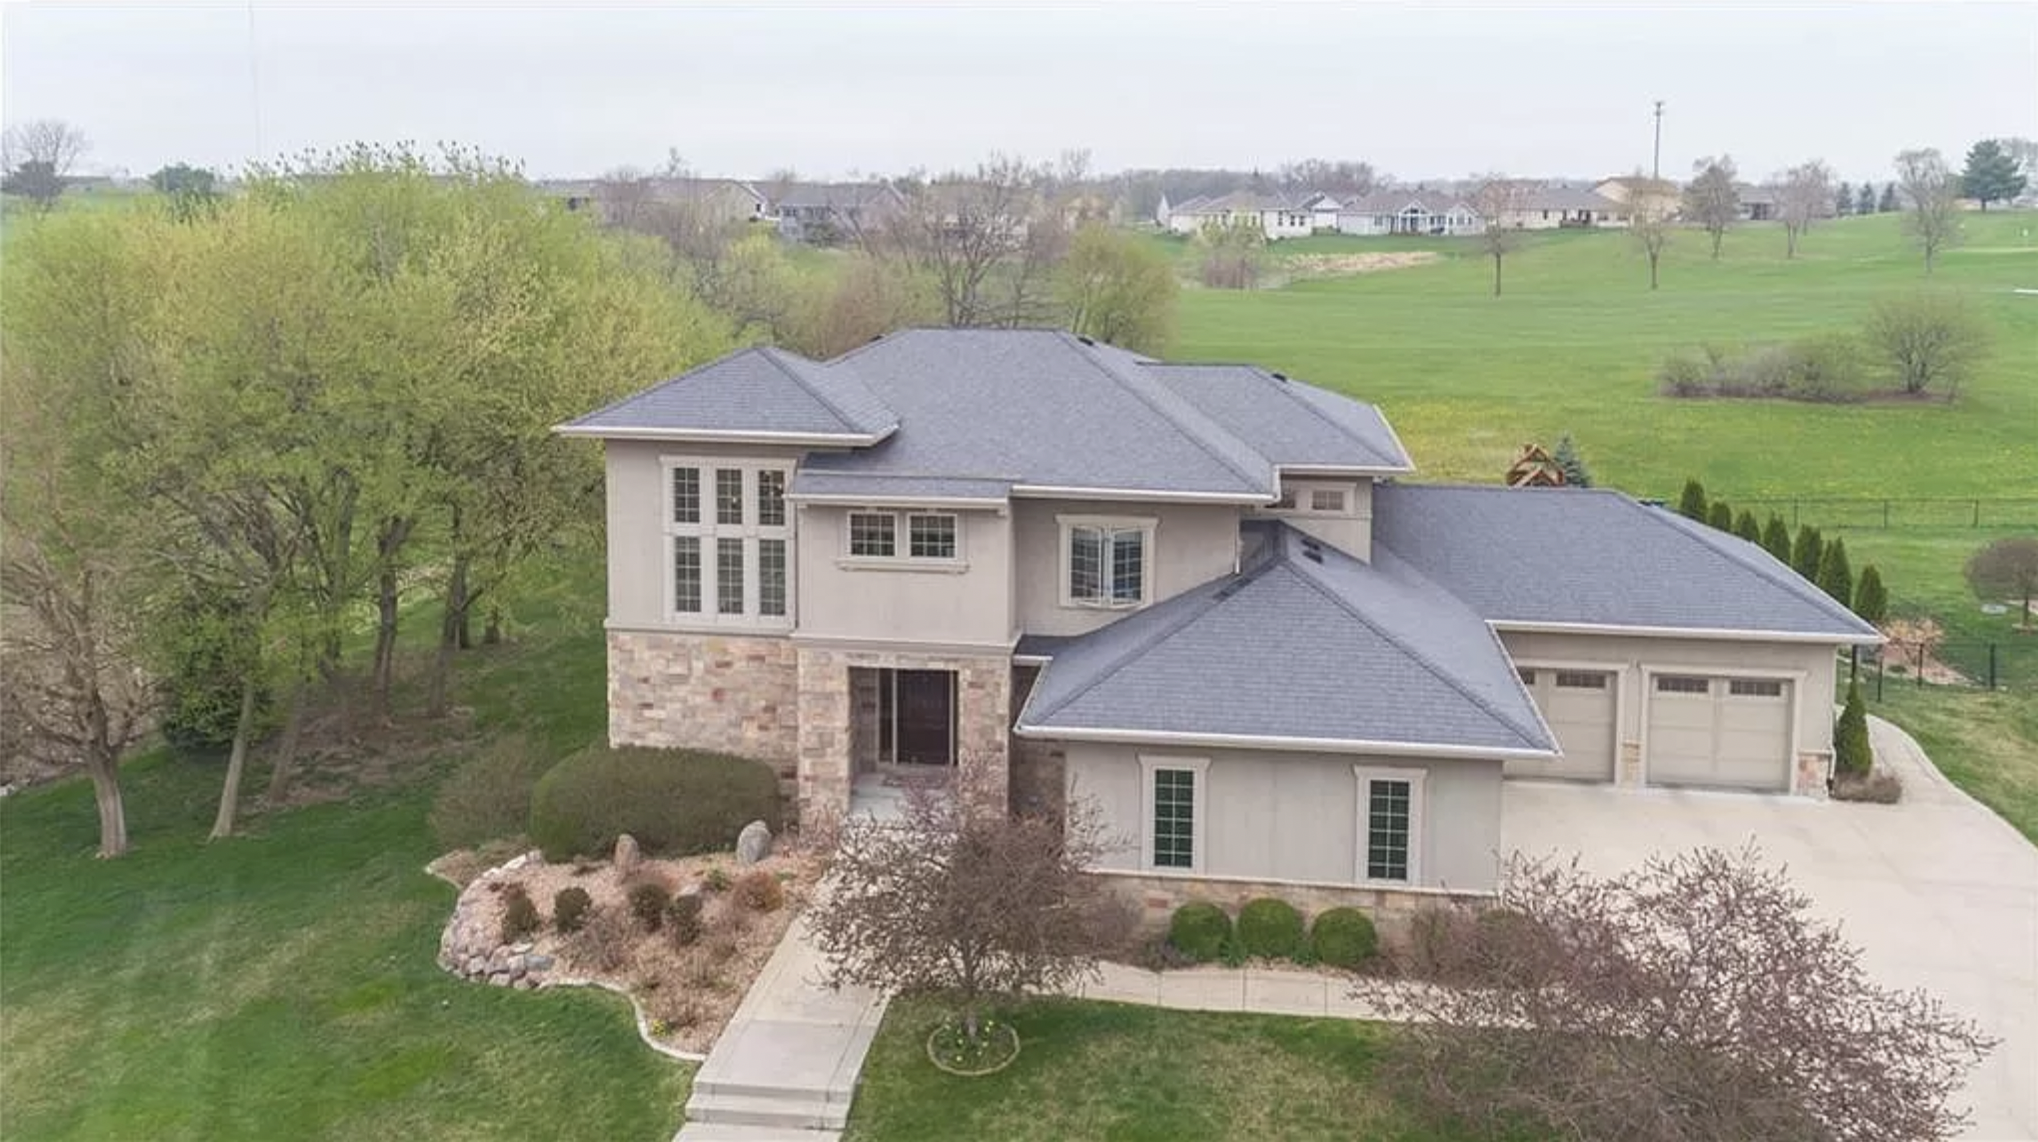 A home in Pleasant Hill that's up for sale.